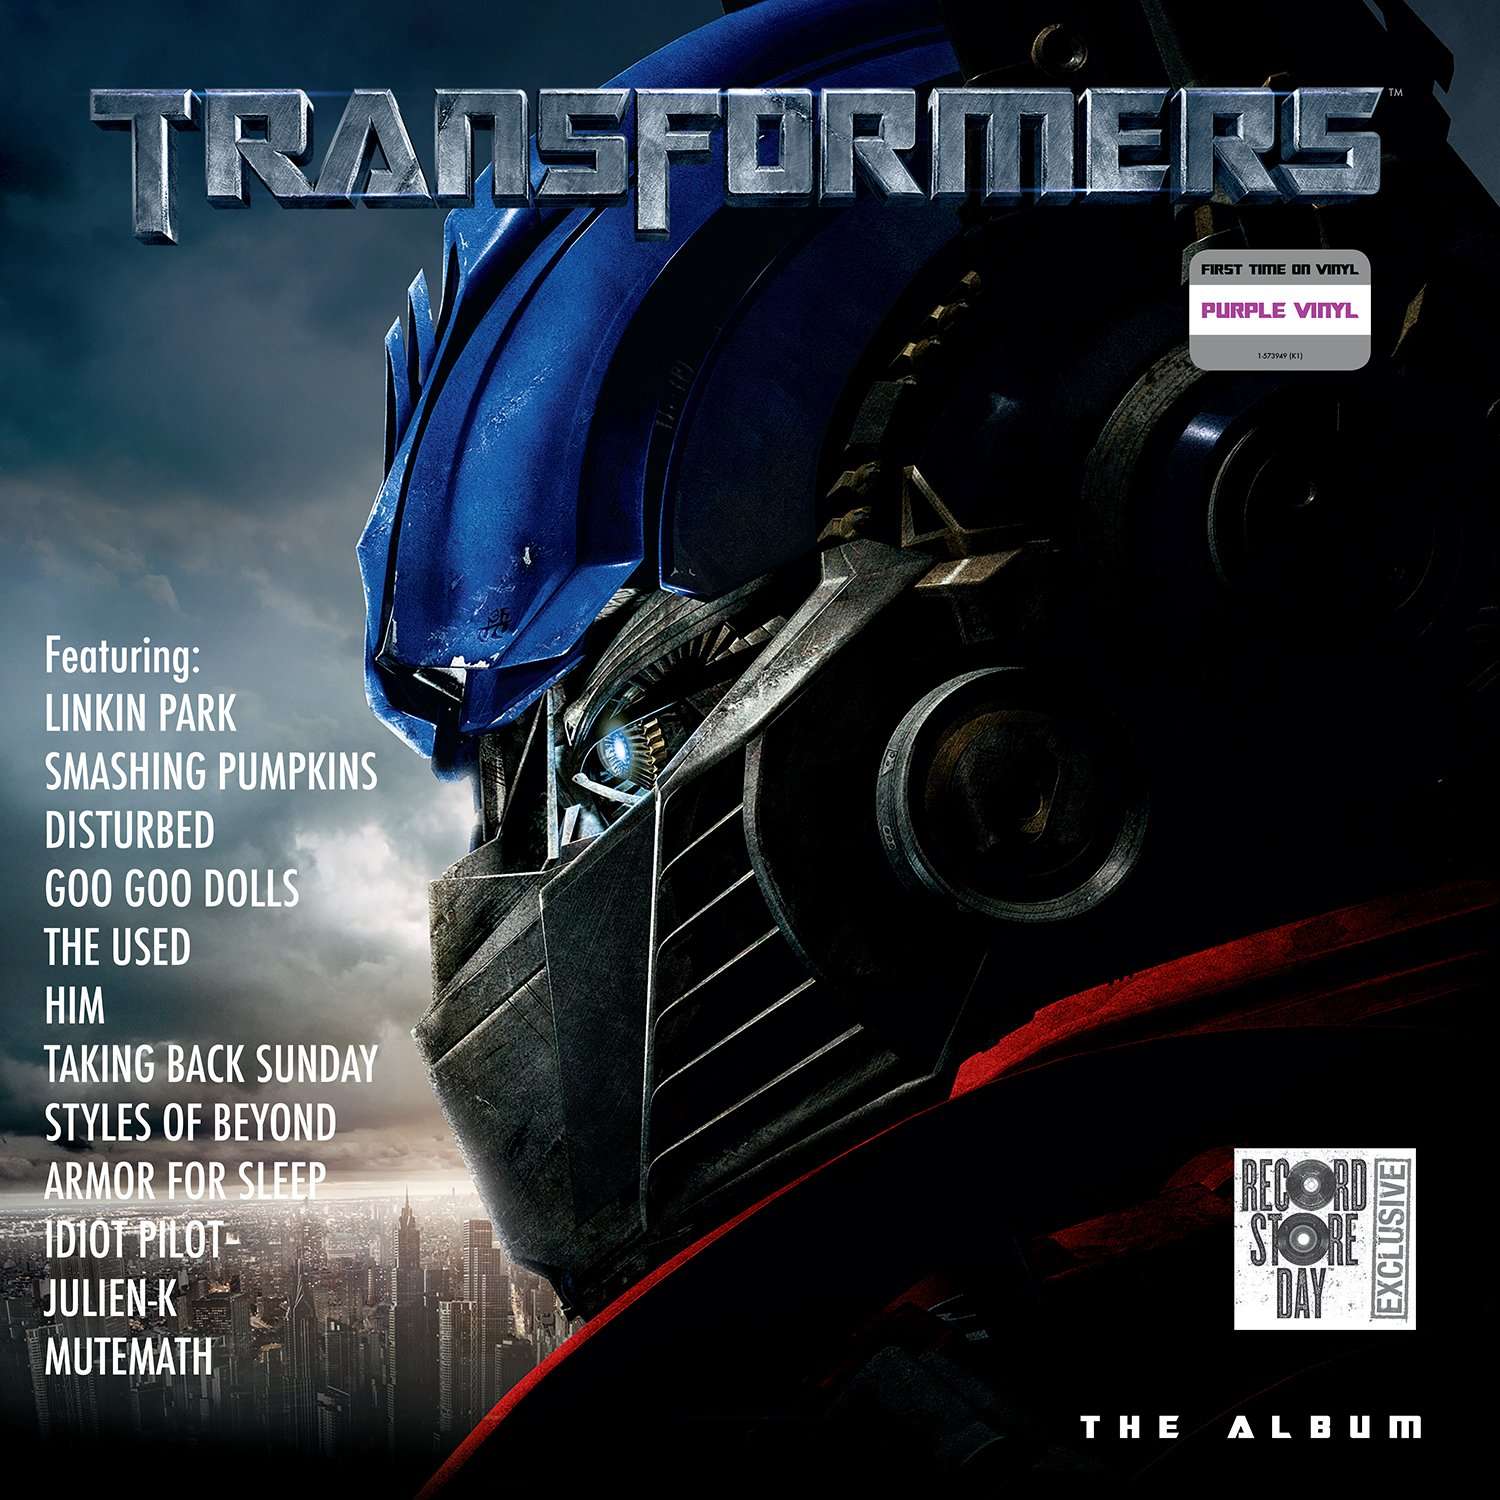 Linkin Park On Twitter Record Store Day Exclusive Transformers Special Edition Vinyl Featuring What I Ve Done New Divide Iridescent Are Available On April 13 2019 Https T Co Iknfrbamcs